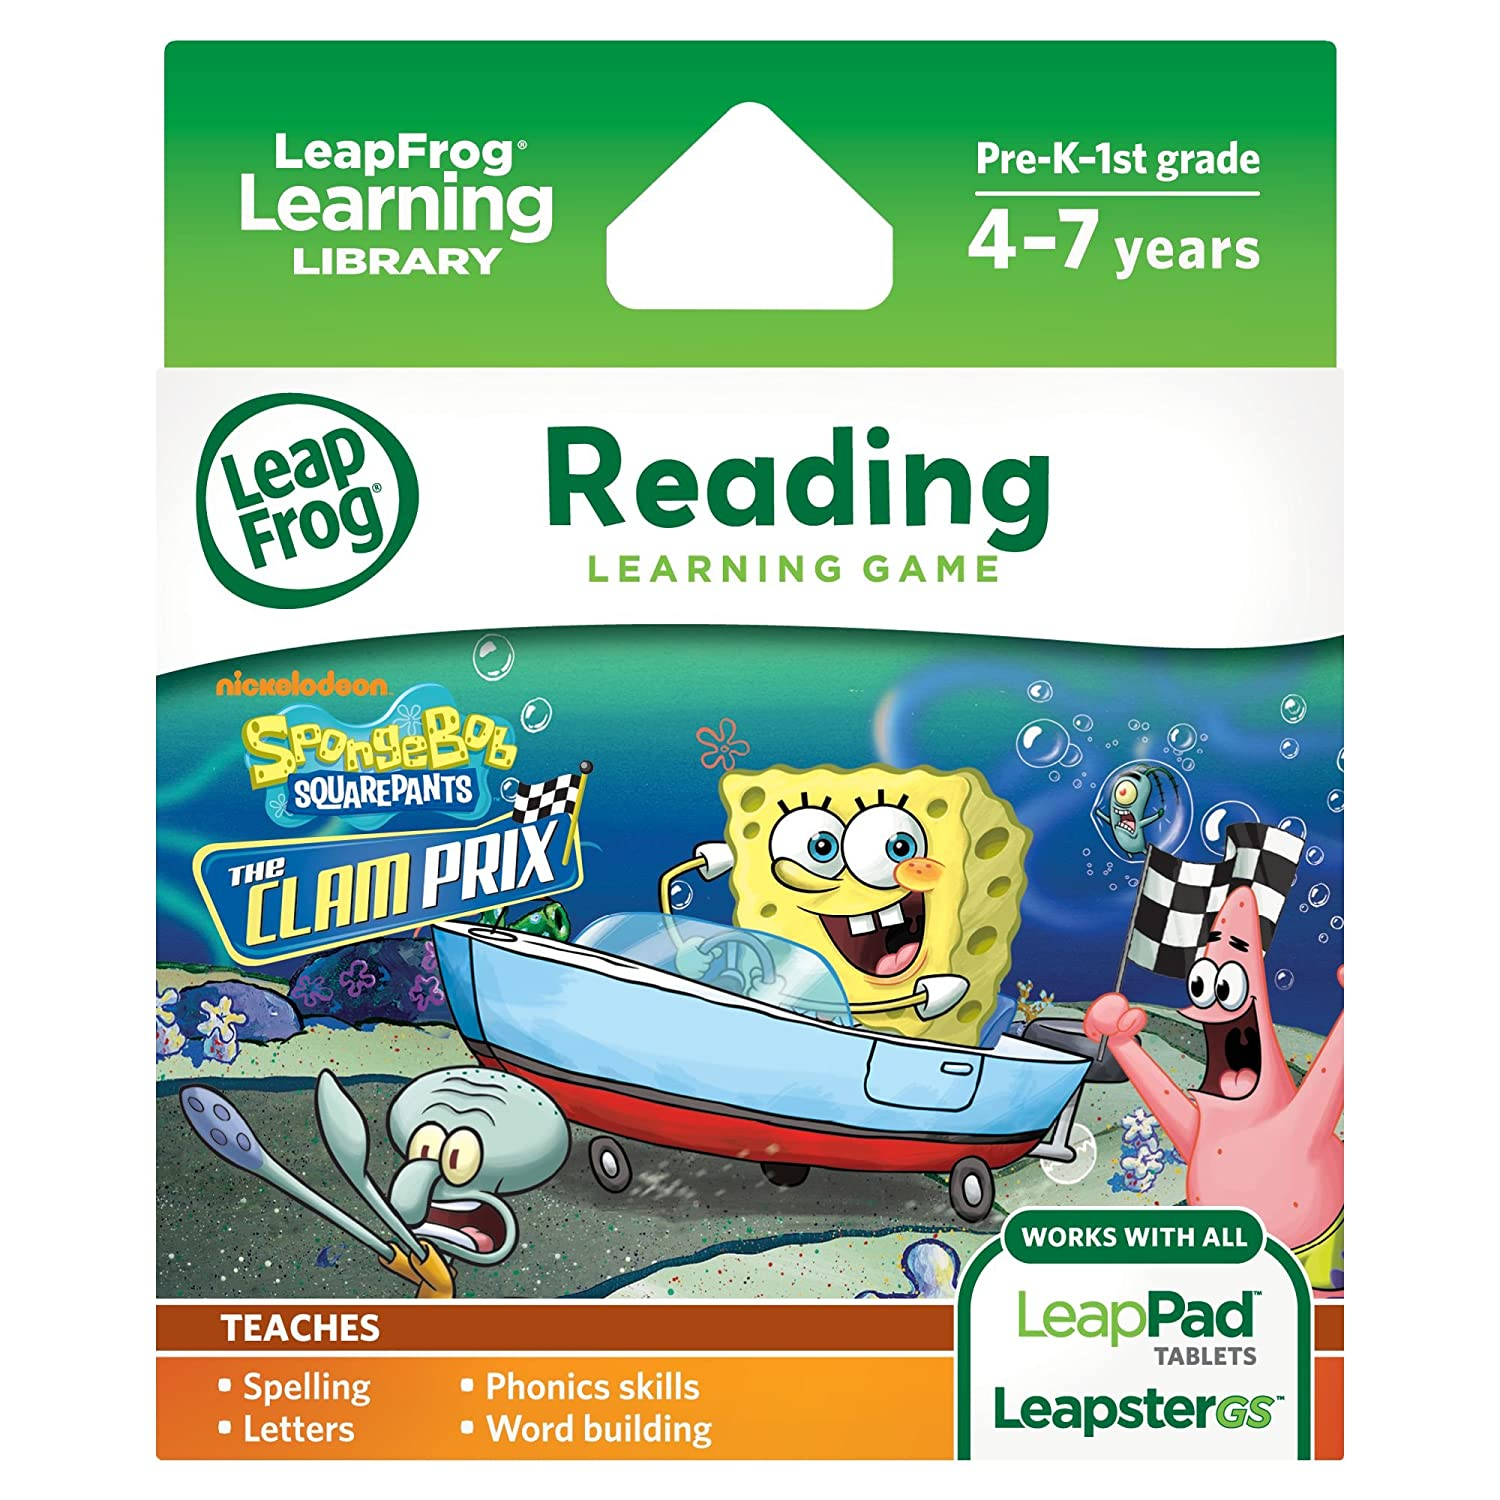 Amazon LeapFrog SpongeBob SquarePants The Clam Prix Learning